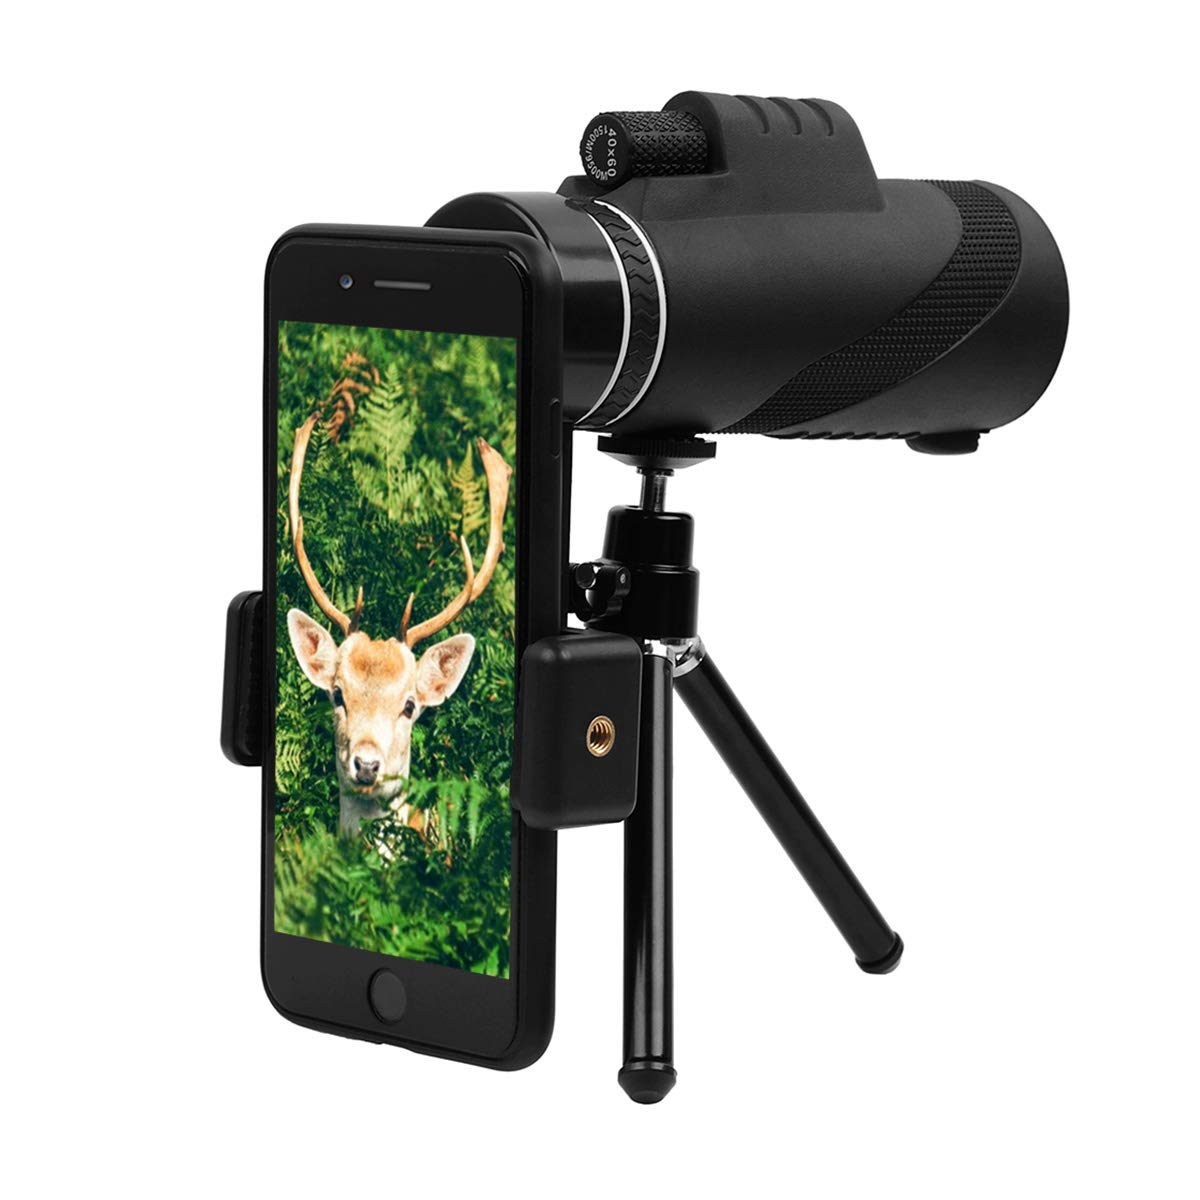 40x60 Monocular Telescope,GEMWON High-Powered BAK4 Prism FMC Lens Waterproof Scope with Smartphone Adapter Tripod Holder for Wildlife Like Bird-Watching,Travel,Concert,Sports etc